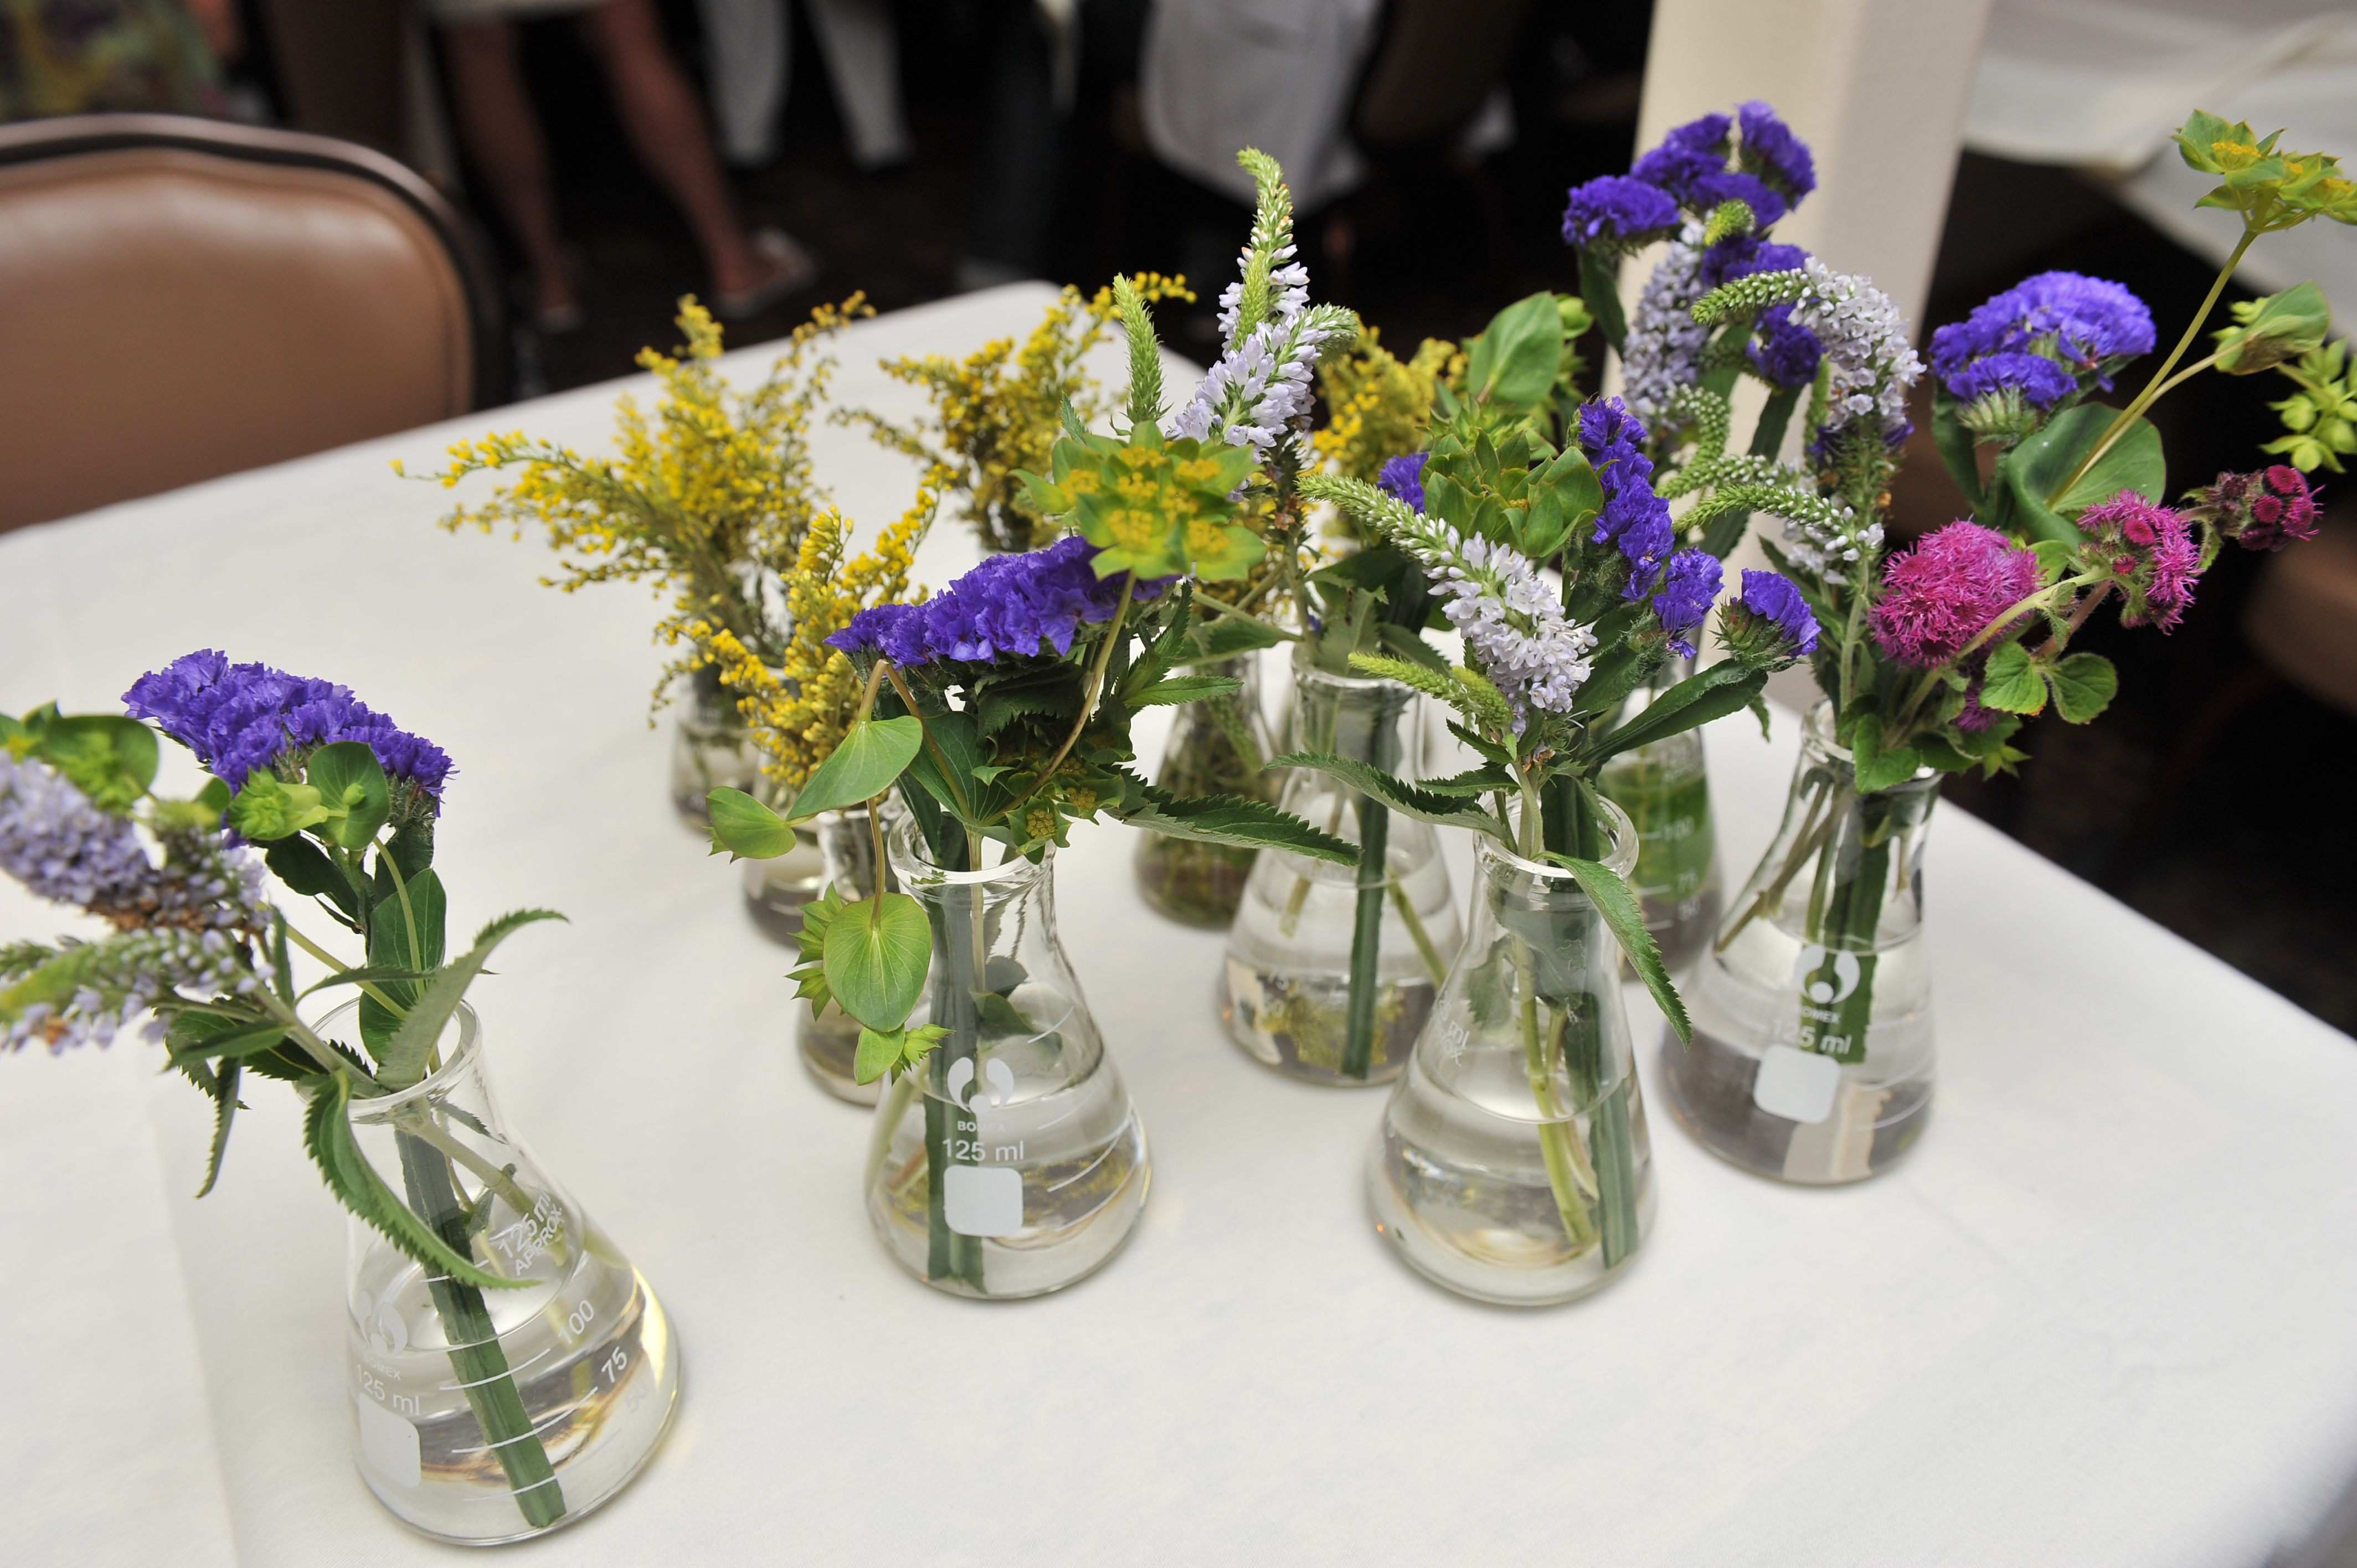 Flowers in erlenmeyer flasks as centerpieces wedding she used beakers for bud vases because collin is a scientist reviewsmspy